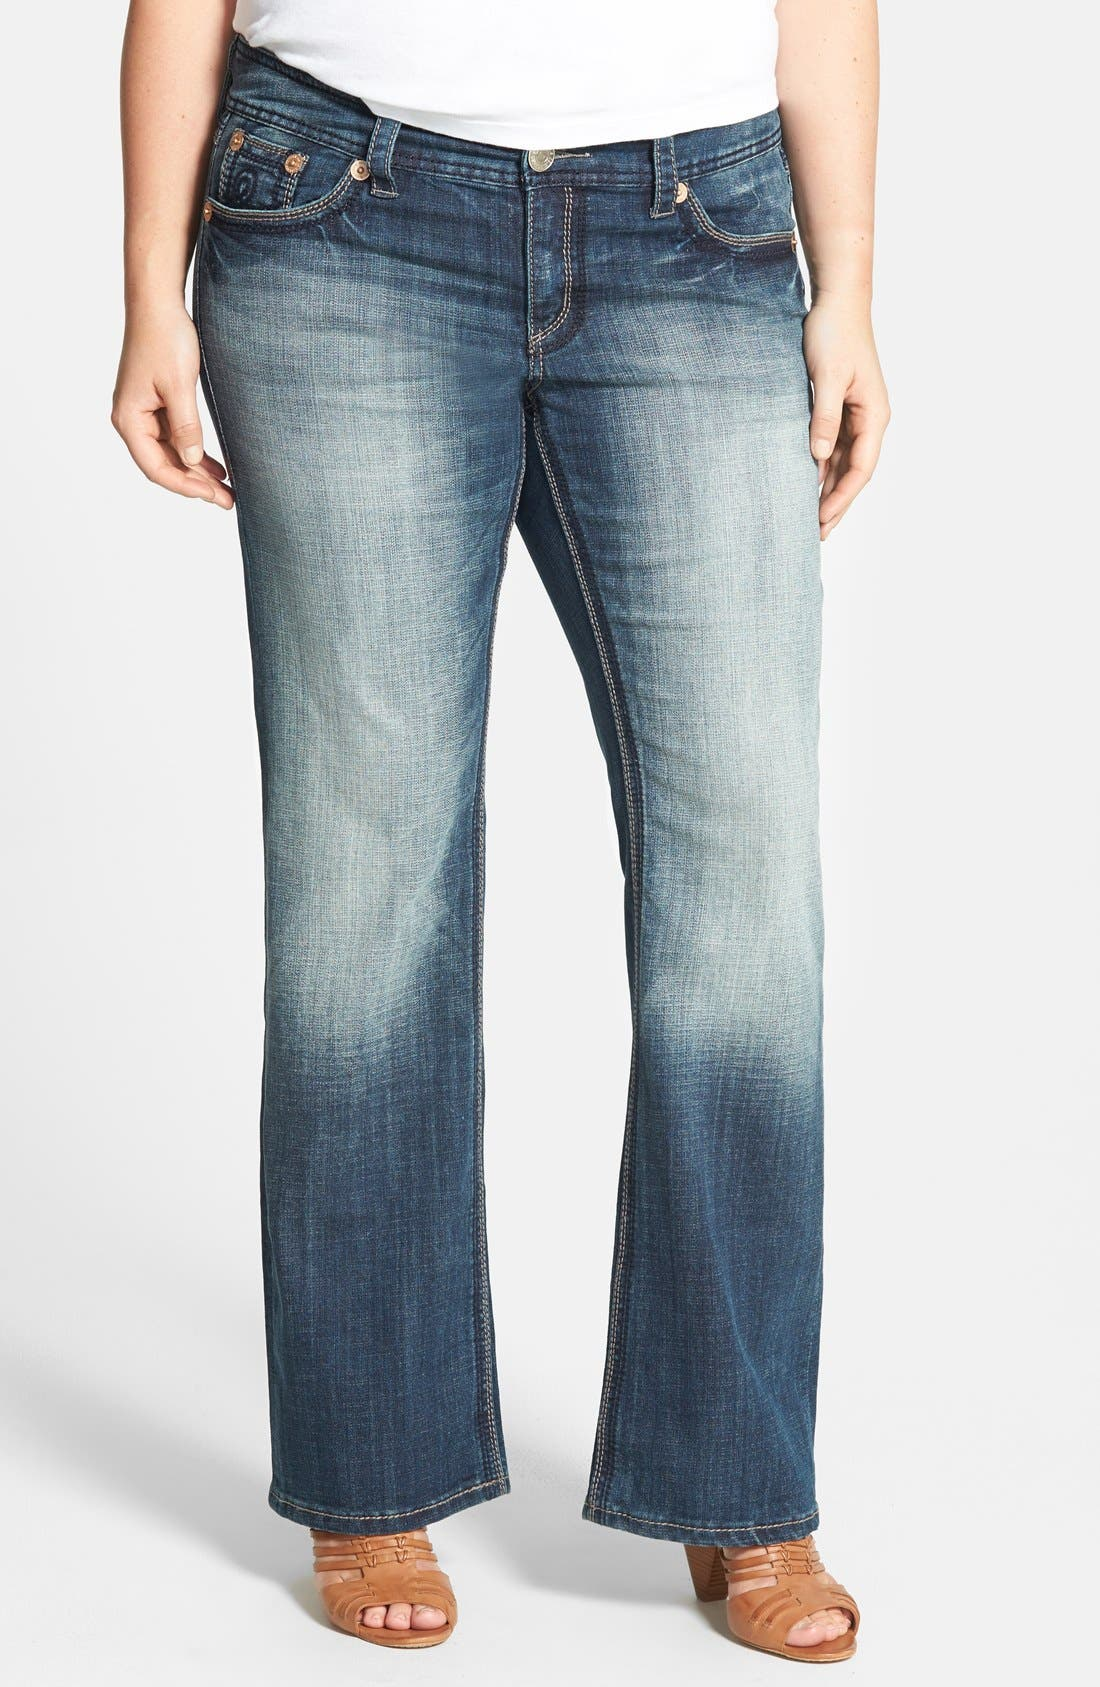 Alternate Image 1 Selected - Seven7 Bootcut Jeans (Nirvana) (Plus Size)